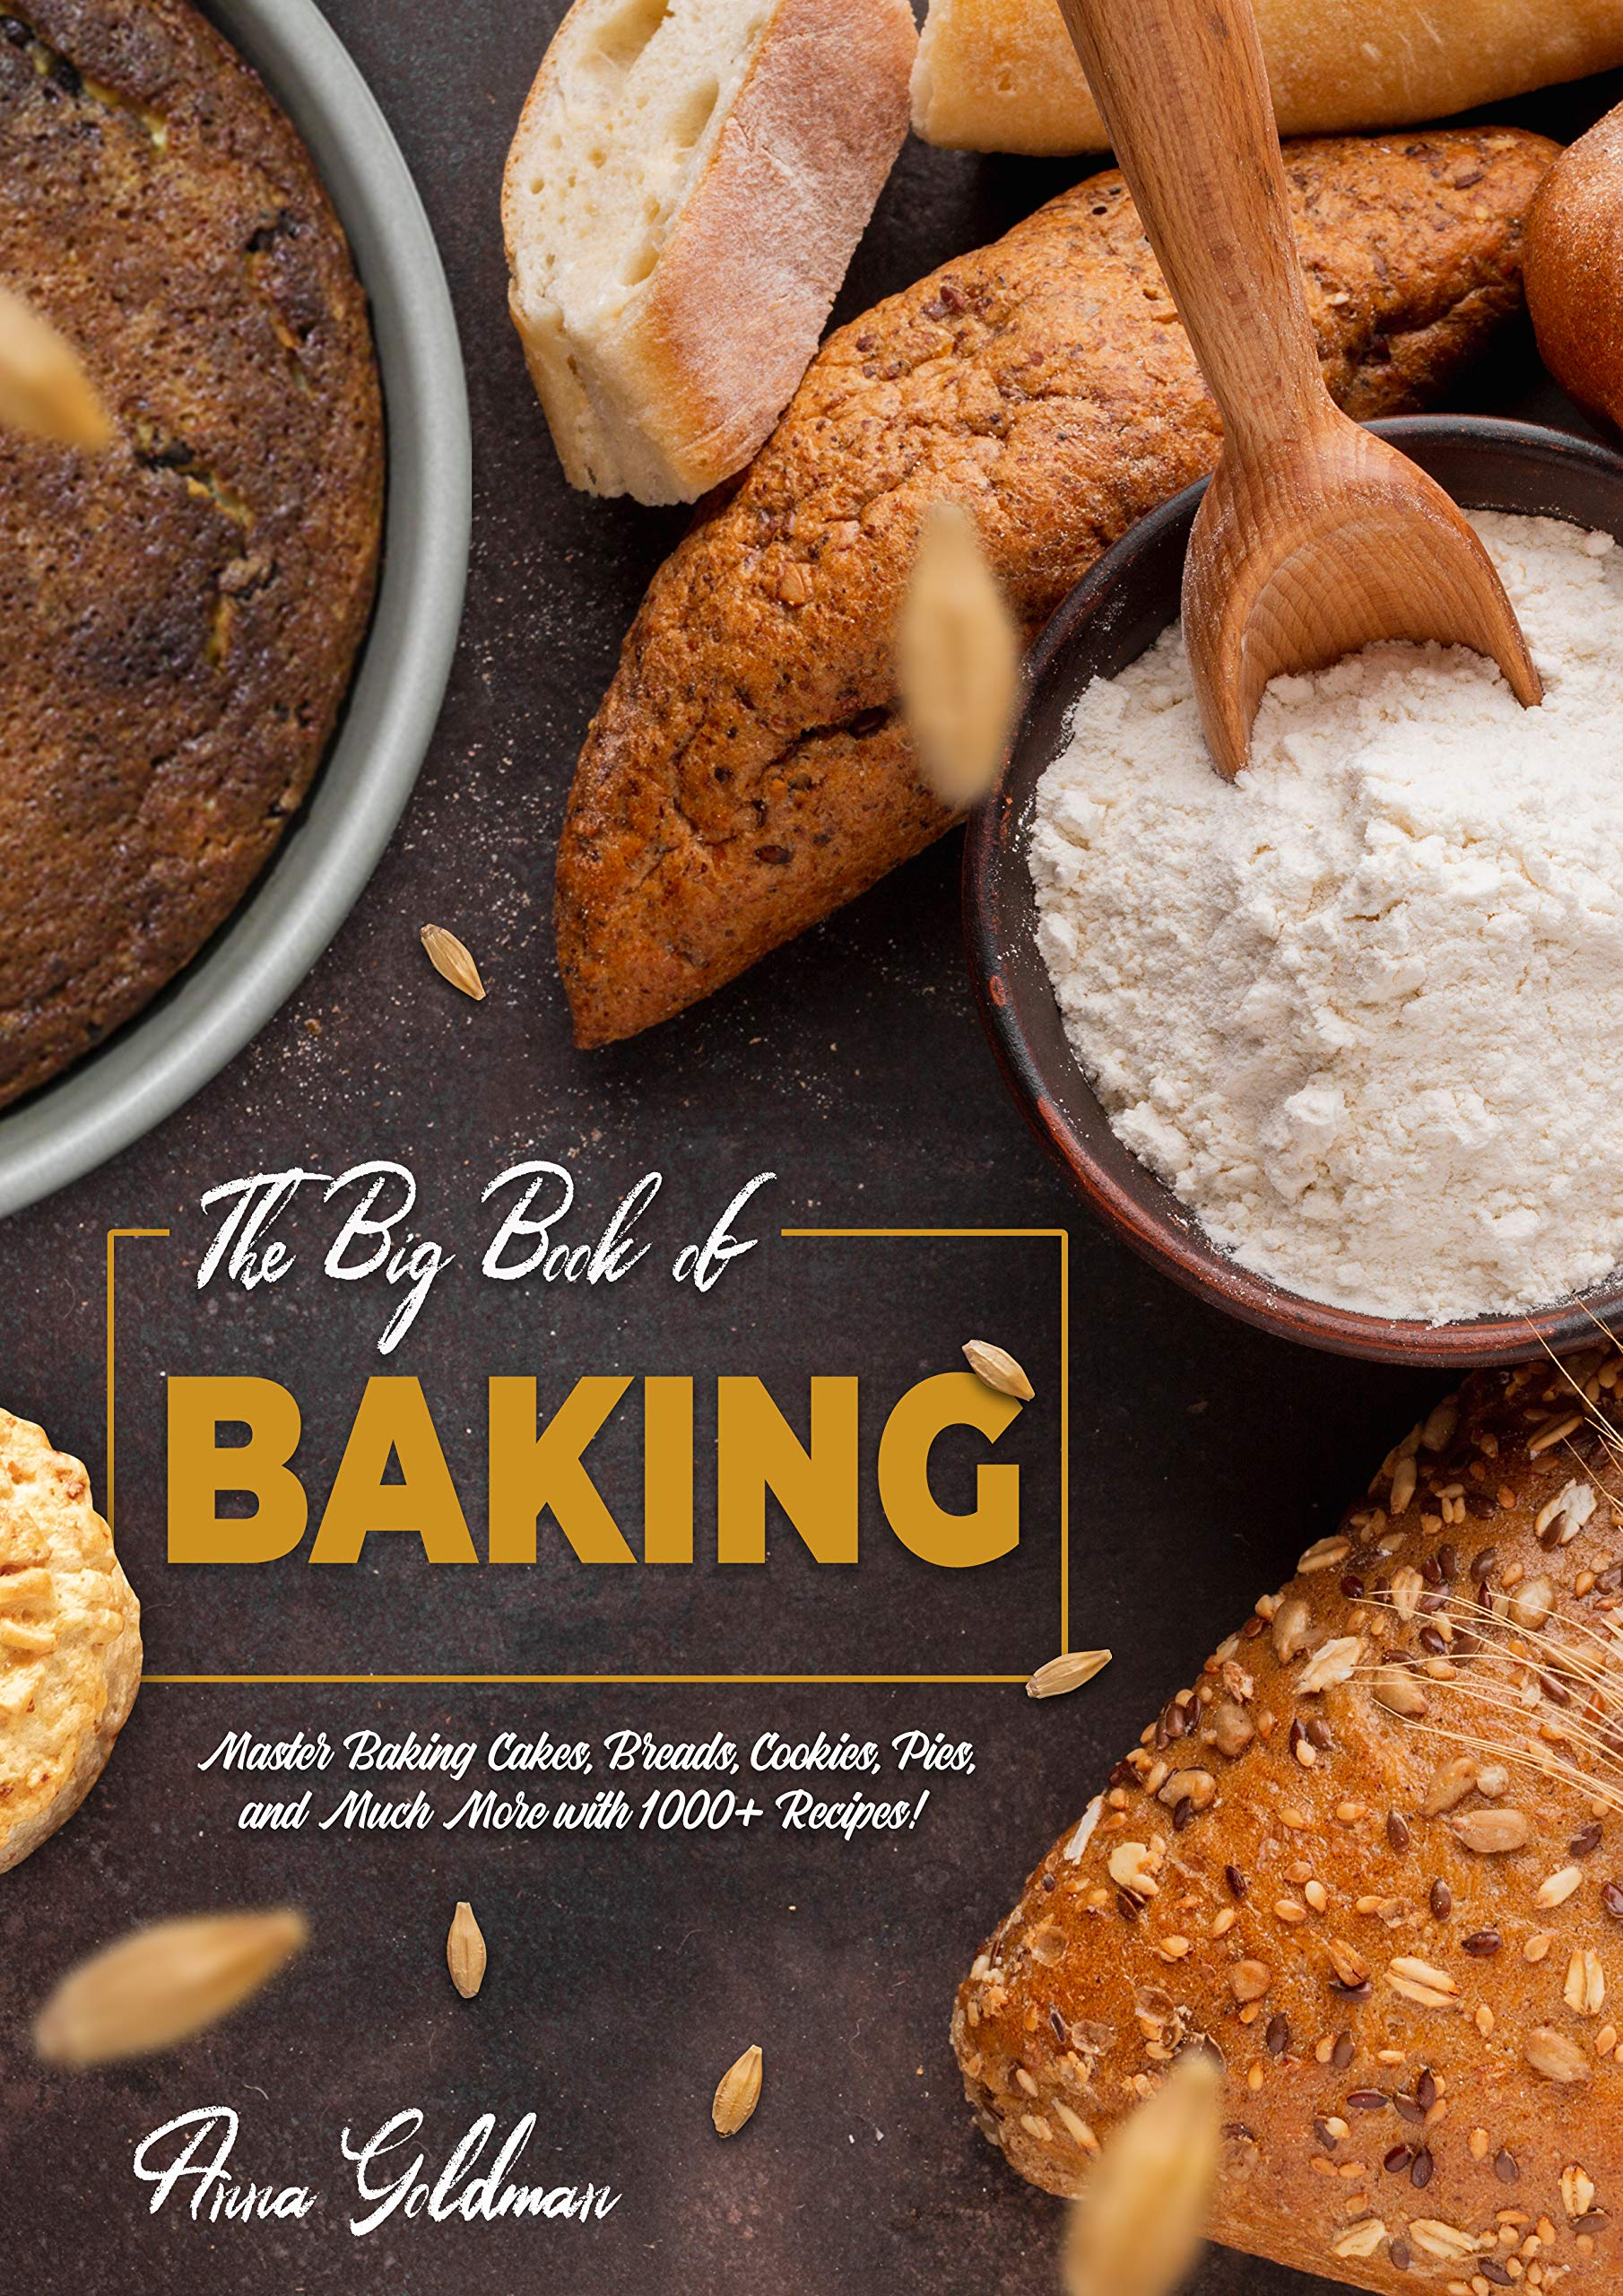 The Big Book of Baking: Master Baking Cakes, Breads, Cookies, Pies, and Much More with 1000+ Recipes! (Baking Cookbook 8)